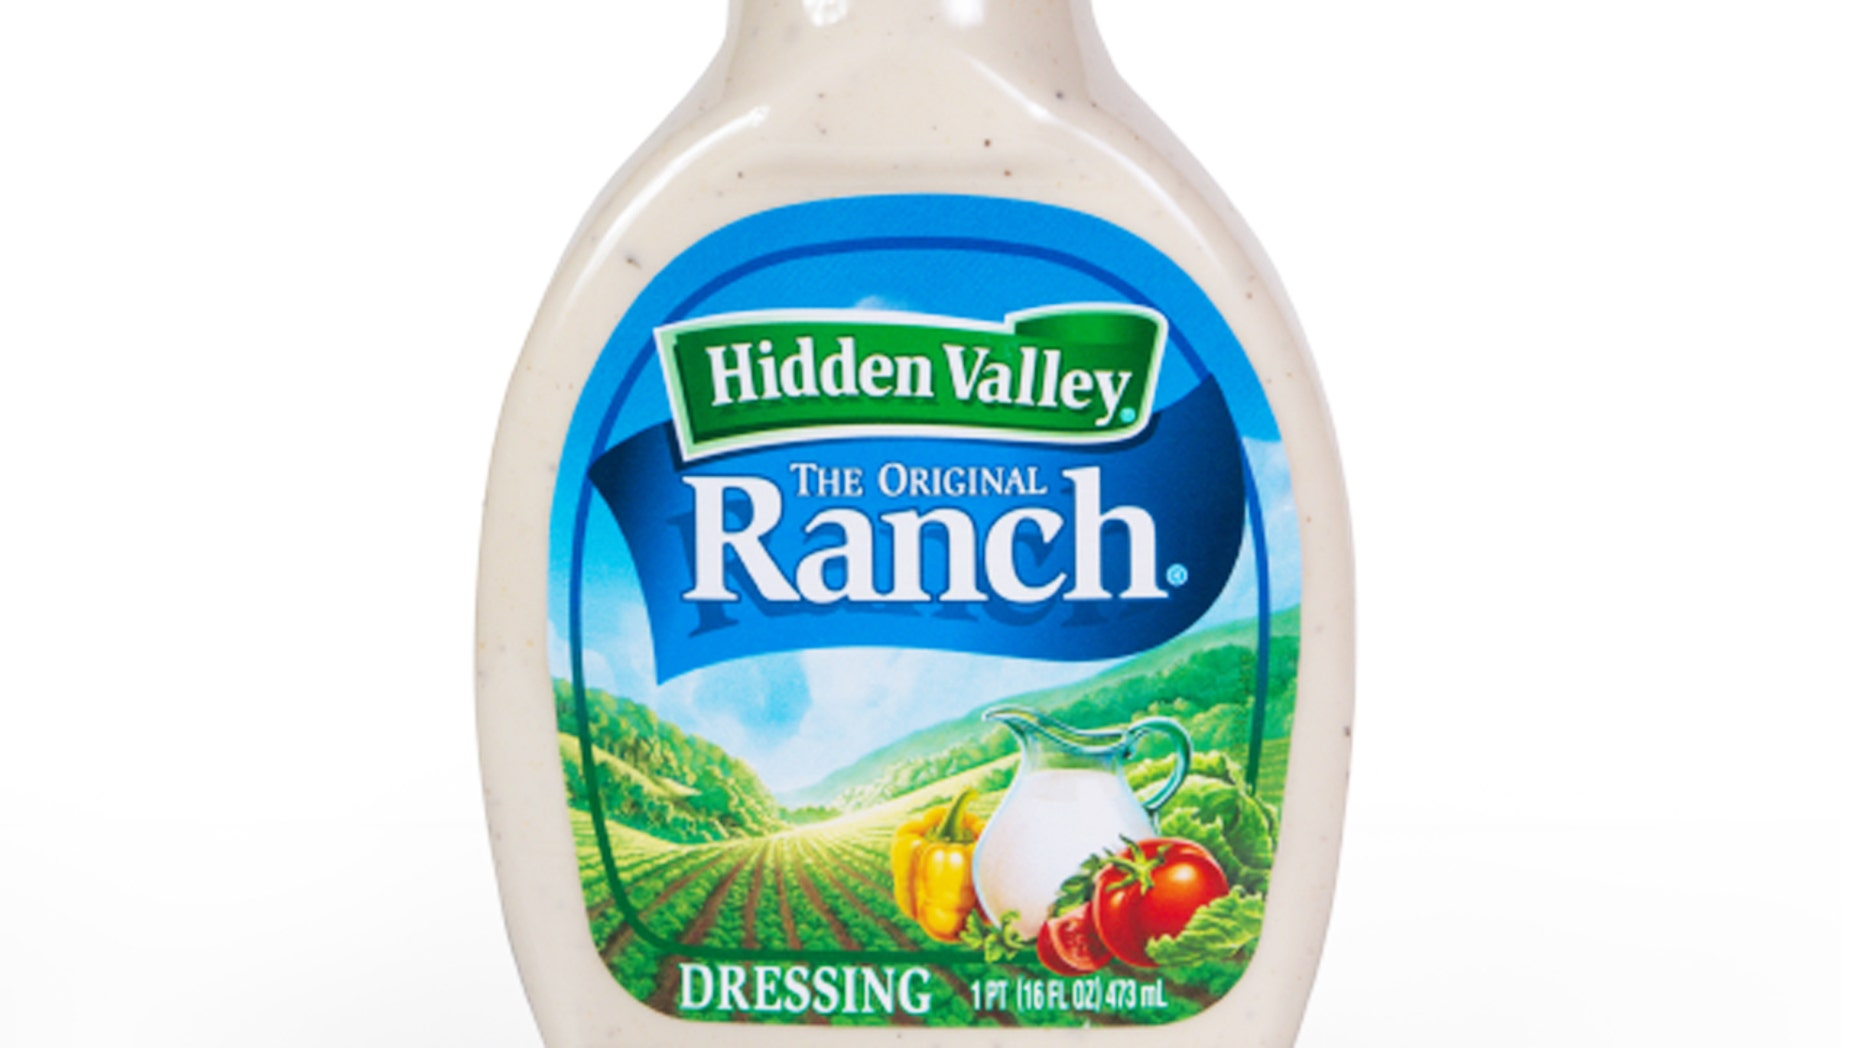 Is this ranch worth $1000?